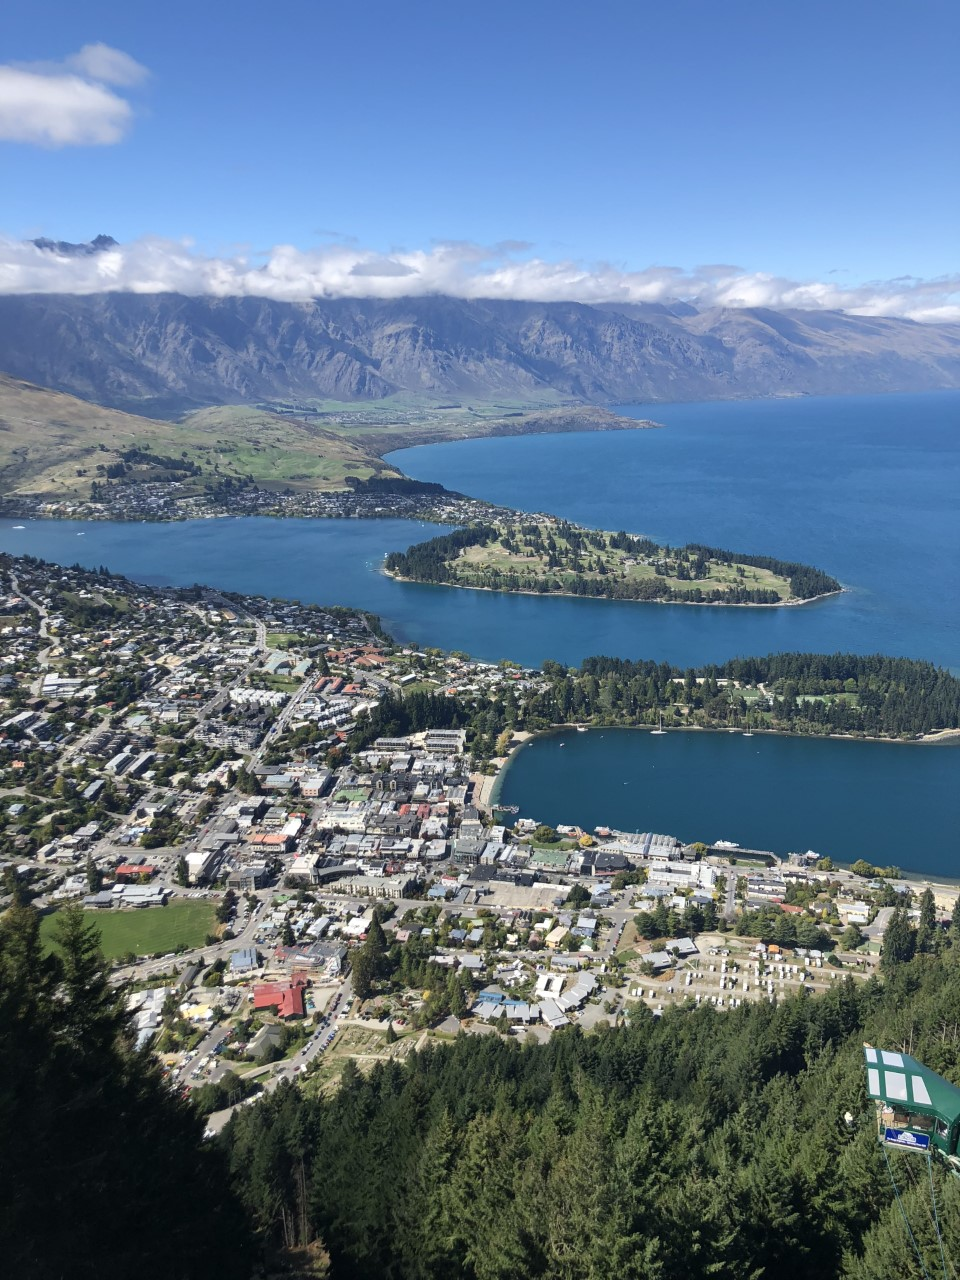 The view from Bob's Peak in Queenstown